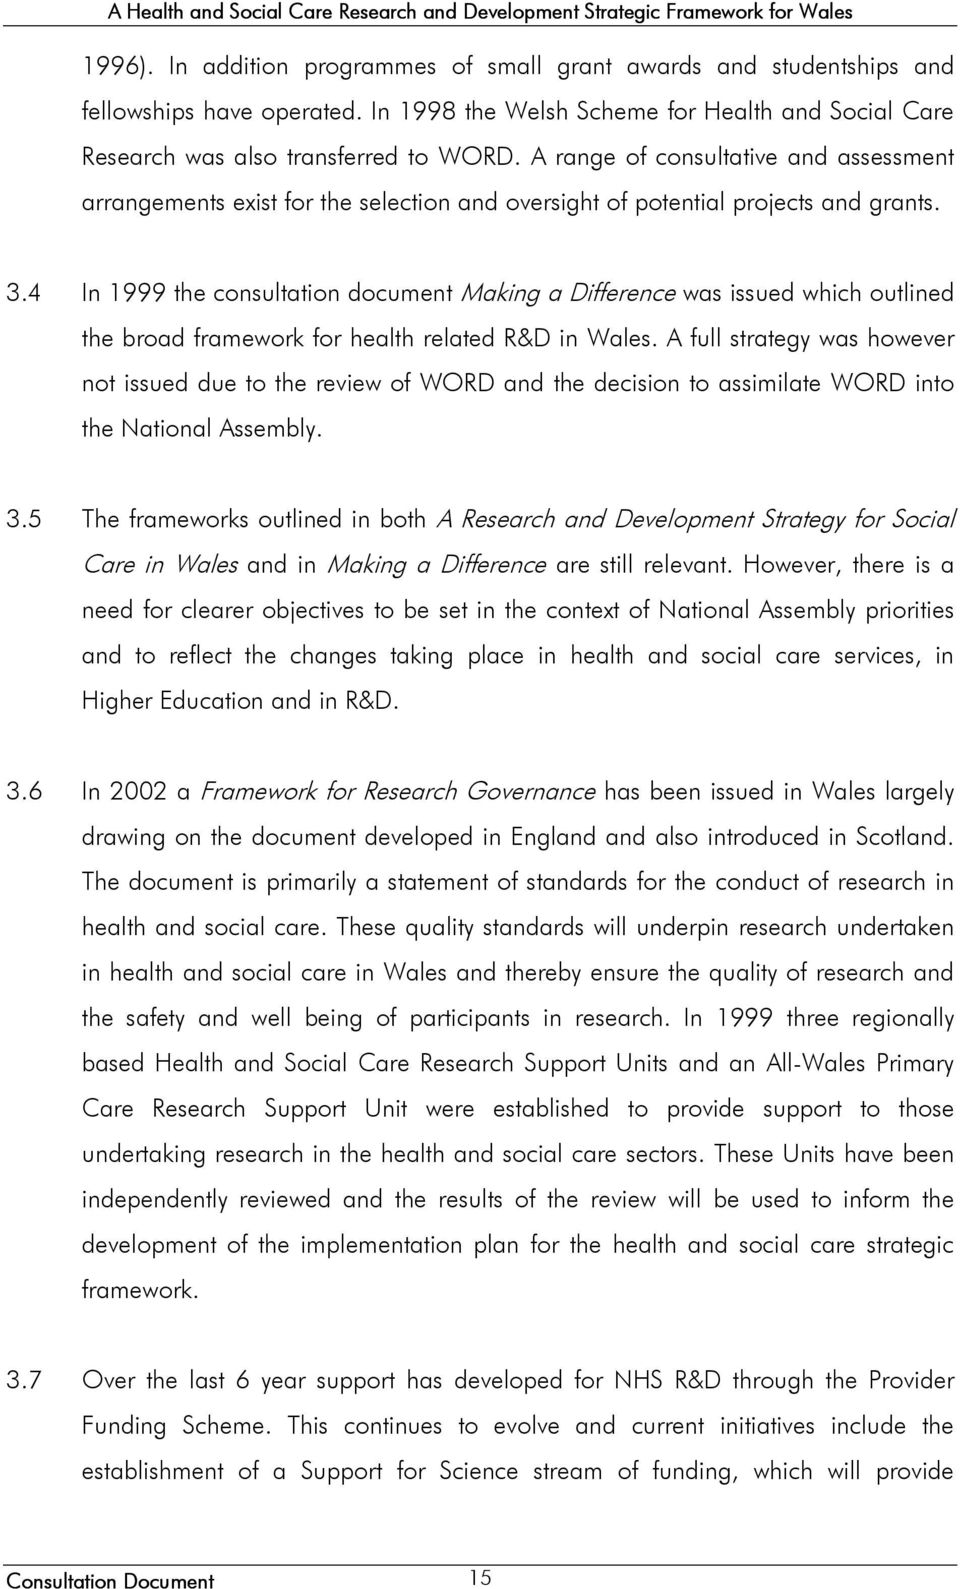 4 In 1999 the consultation document Making a Difference was issued which outlined the broad framework for health related R&D in Wales.